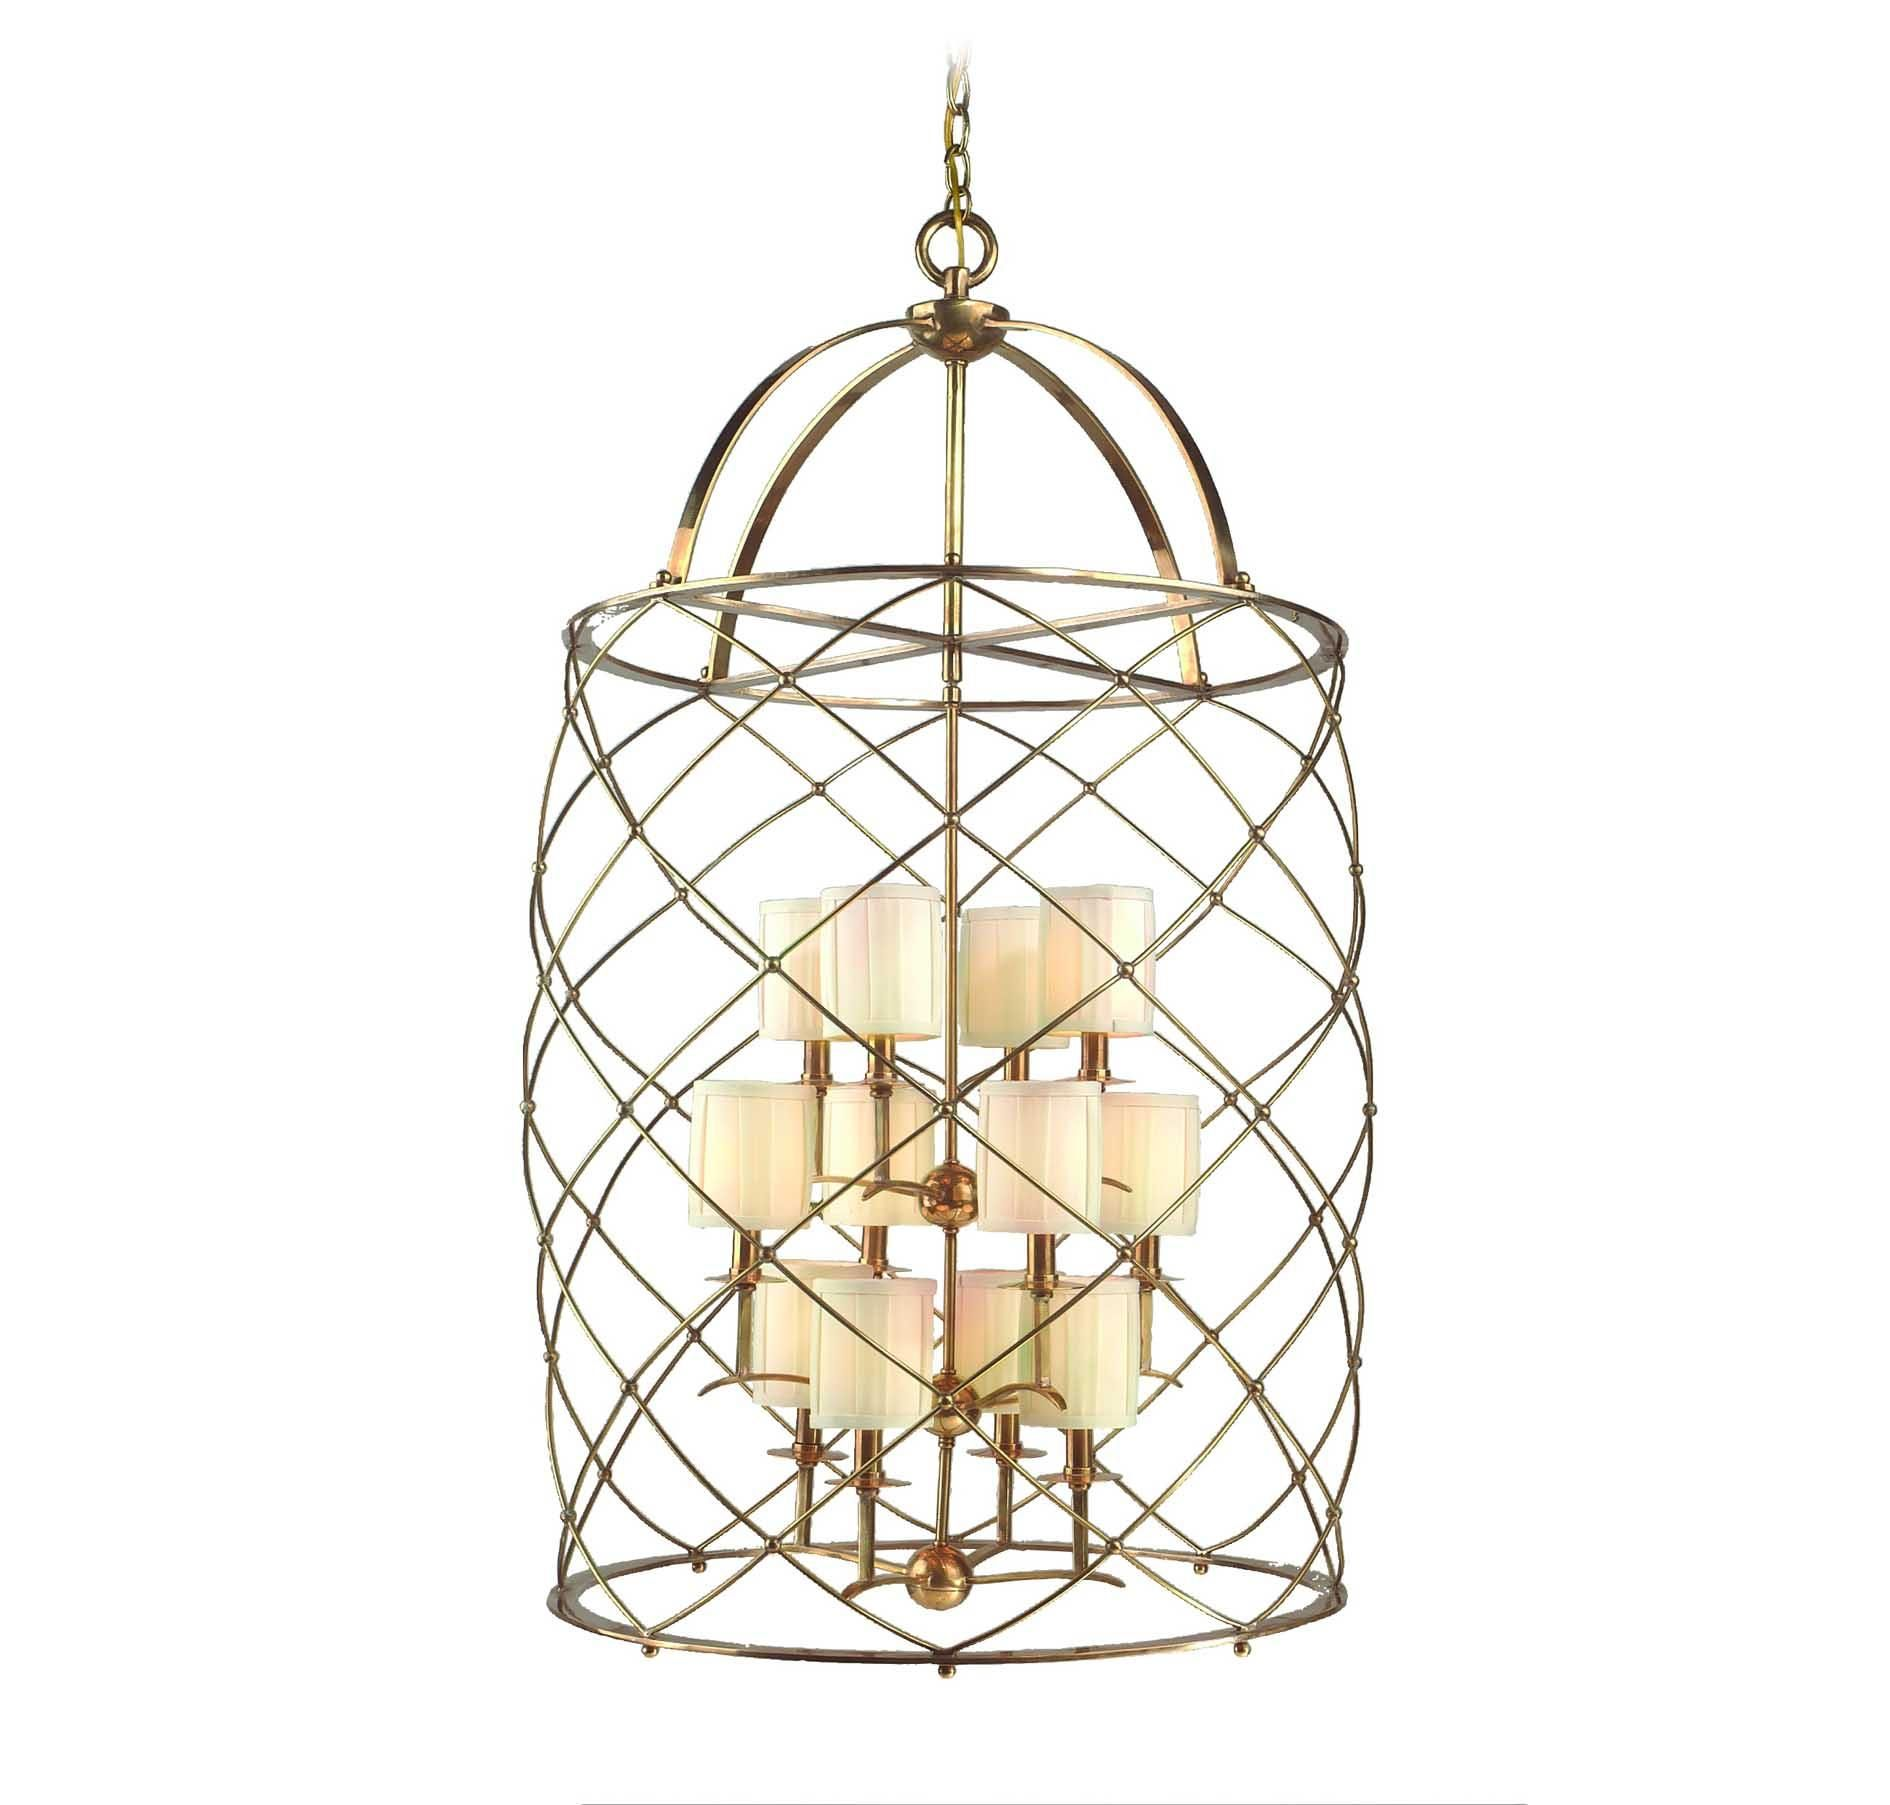 Corbett Lighting Argyle Solid Brass 12-Lt Foyer Chandelier in Brands, Corbett Lighting, Corbett Lighting Chandeliers: LightsOnline.com